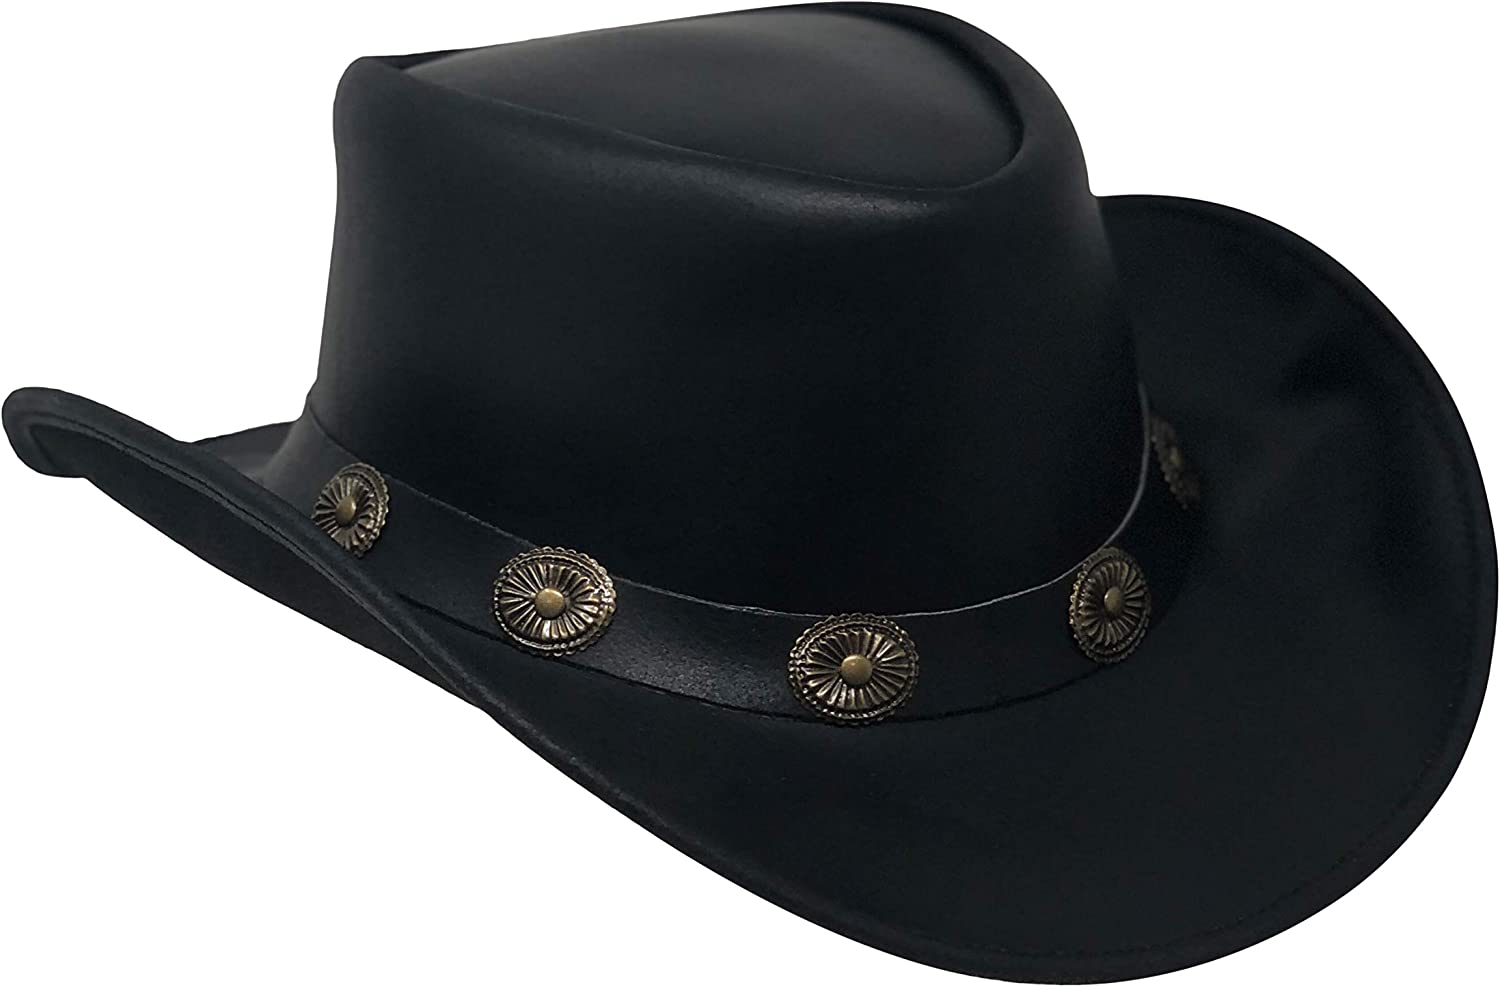 Daily bargain sale Direct sale of manufacturer CHAPEAU TRIBE Shapeable Leather Hat Cowboy Western